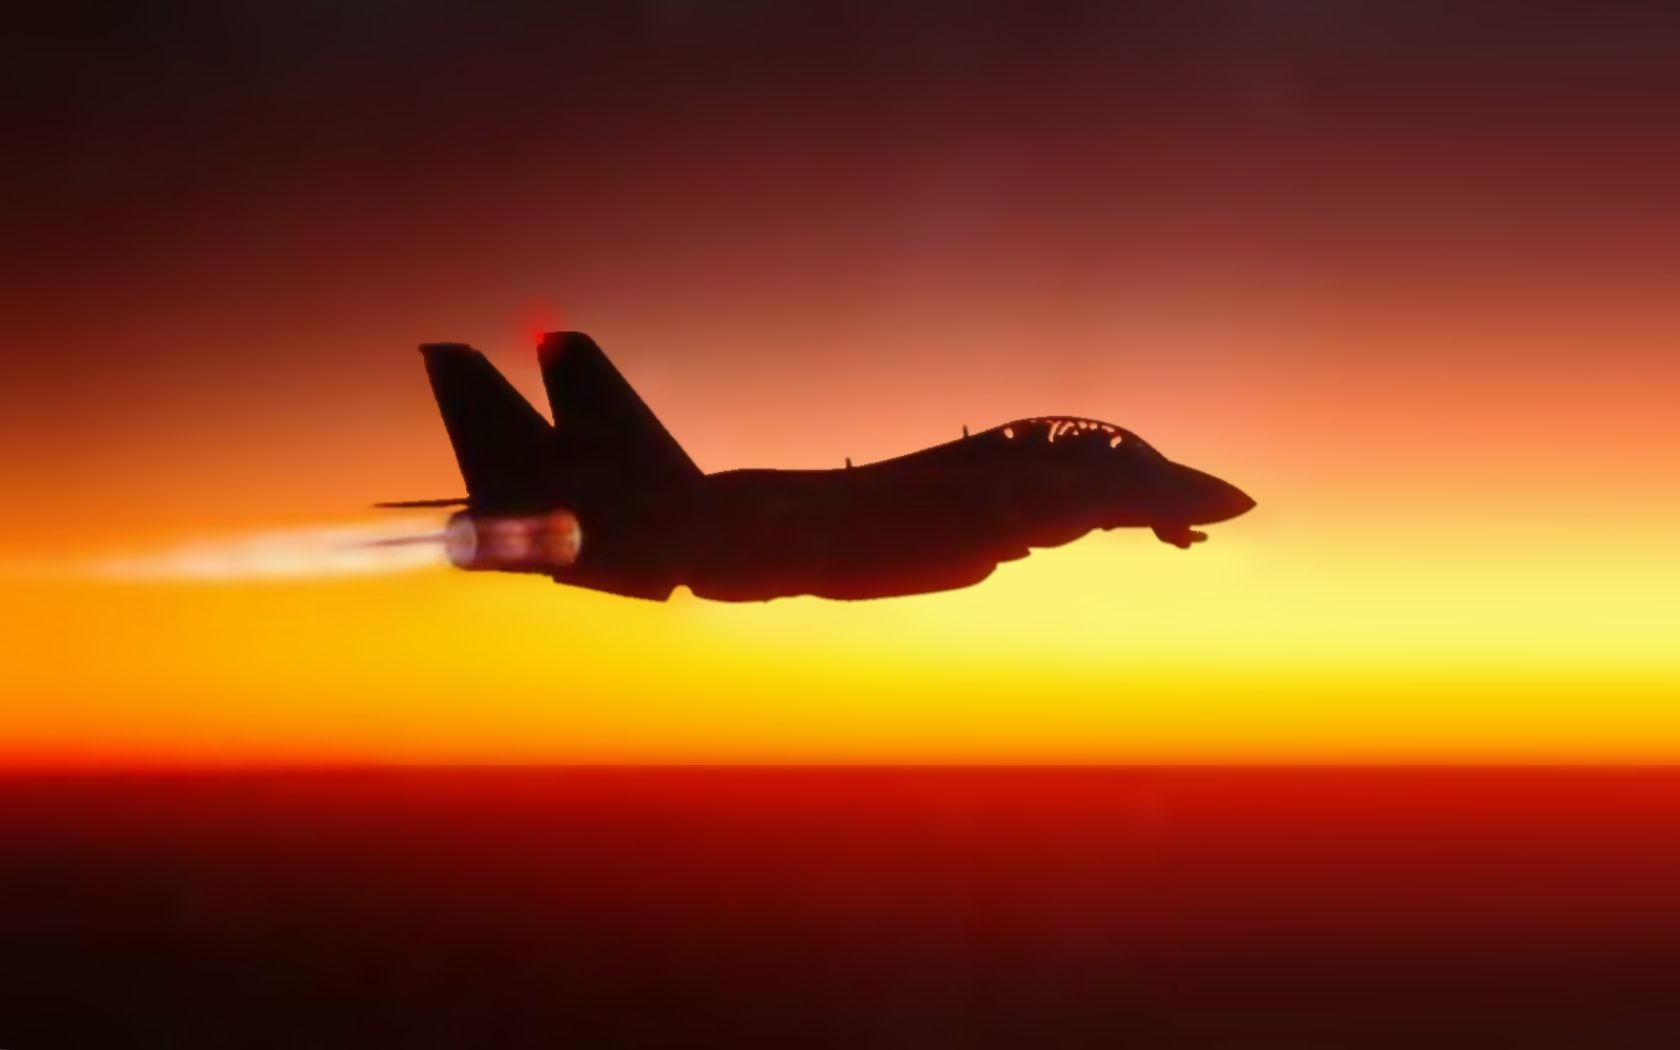 F 14 Tomcat Wallpaper Download F4 Tomcat Wallpaper F 14 Tomcat 1